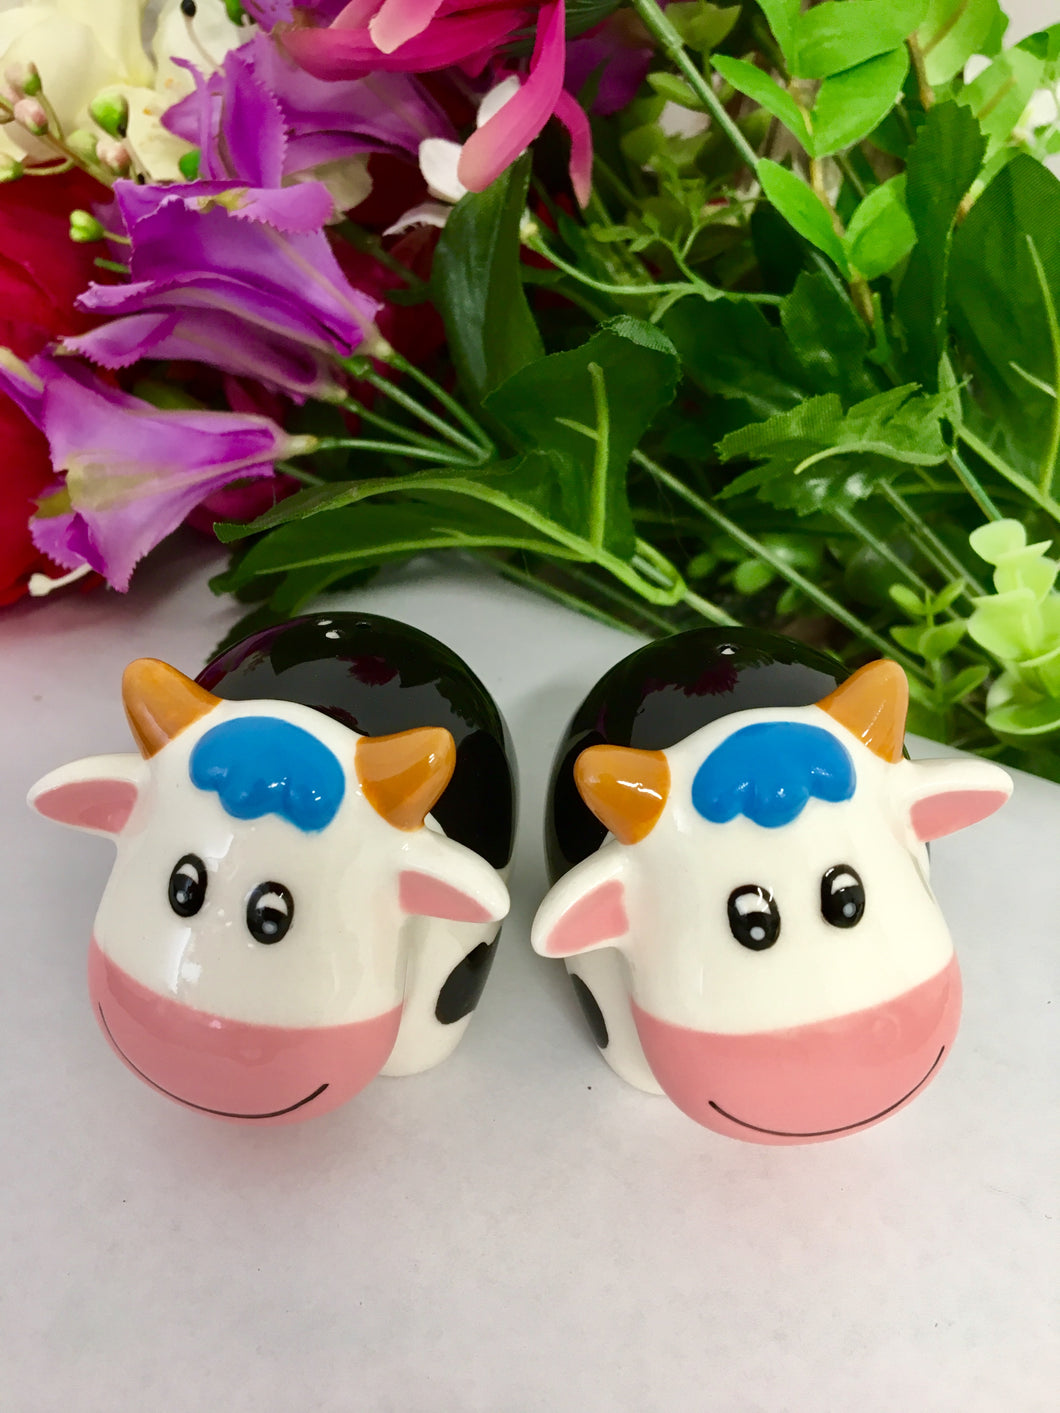 Groovy Cows - Salt Pepper Shakers